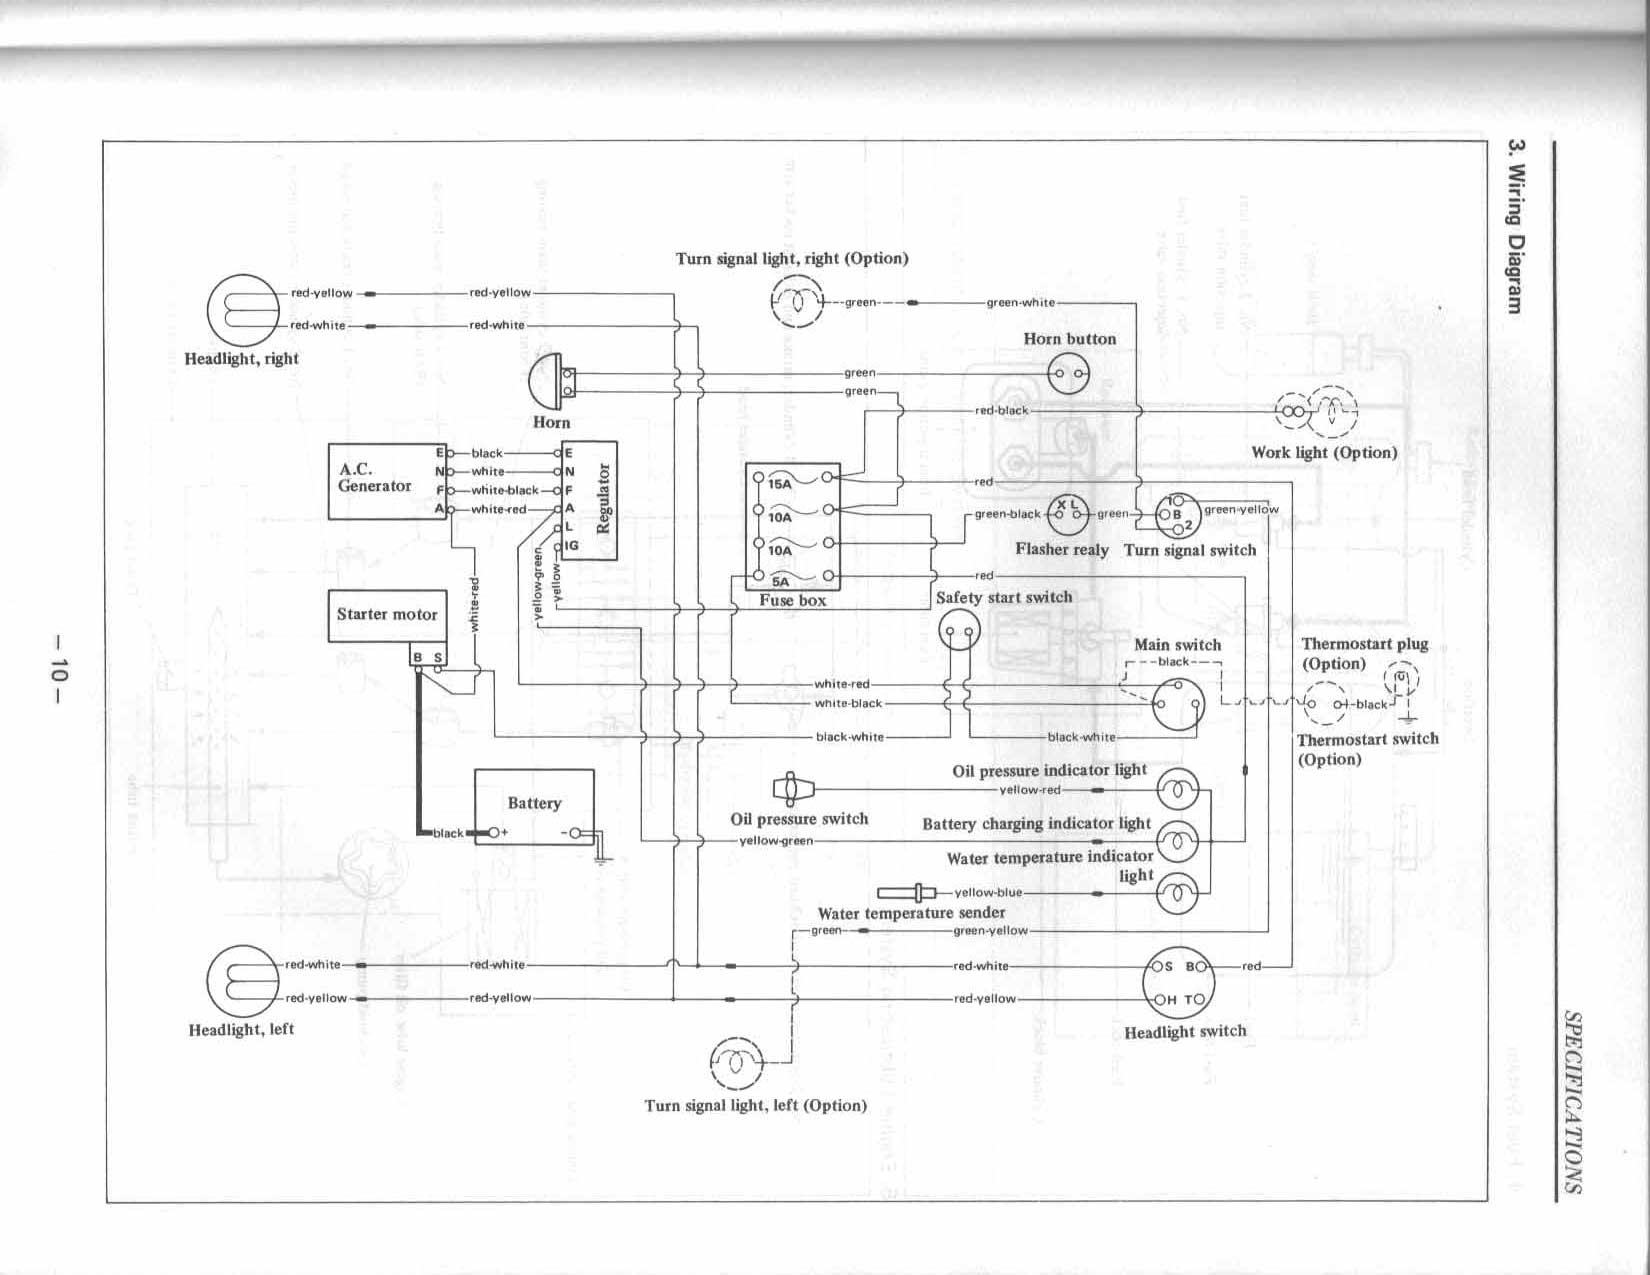 kubota bx2200 wiring diagram wiring diagrams wiring diagram for kubota g4200 car